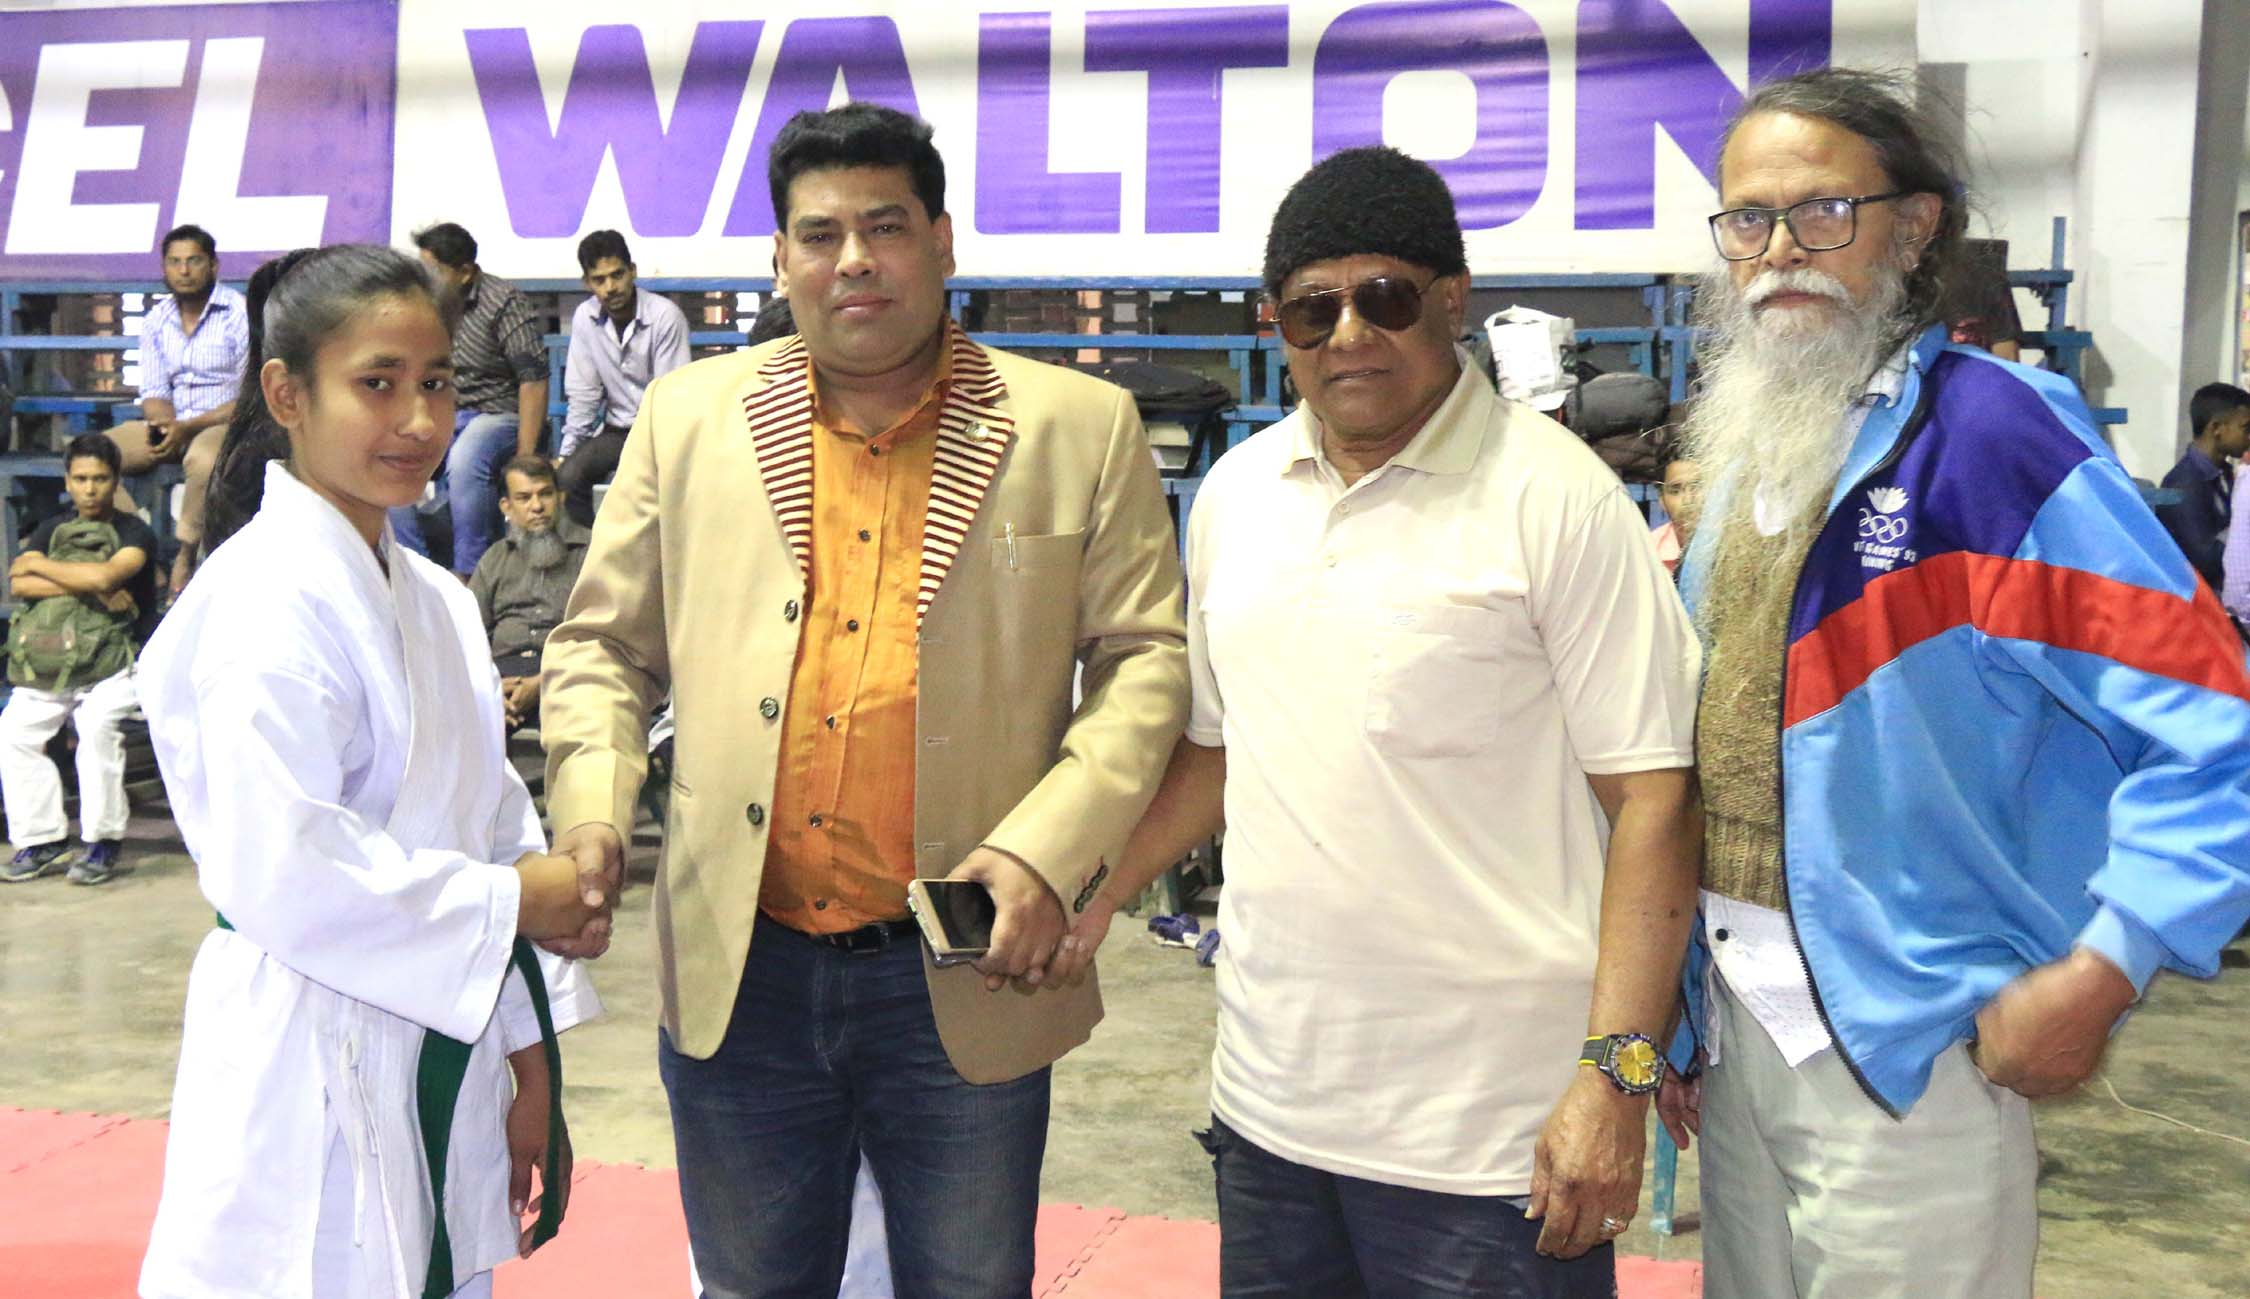 Operative Director (Head of Sports & Welfare Department) of Walton Group FM Iqbal Bin Anwar Dawn (second from left) shaking hands with a participant of Walton National Martial Art Competition at the gymnasium of National Sports Council on Wednesday.